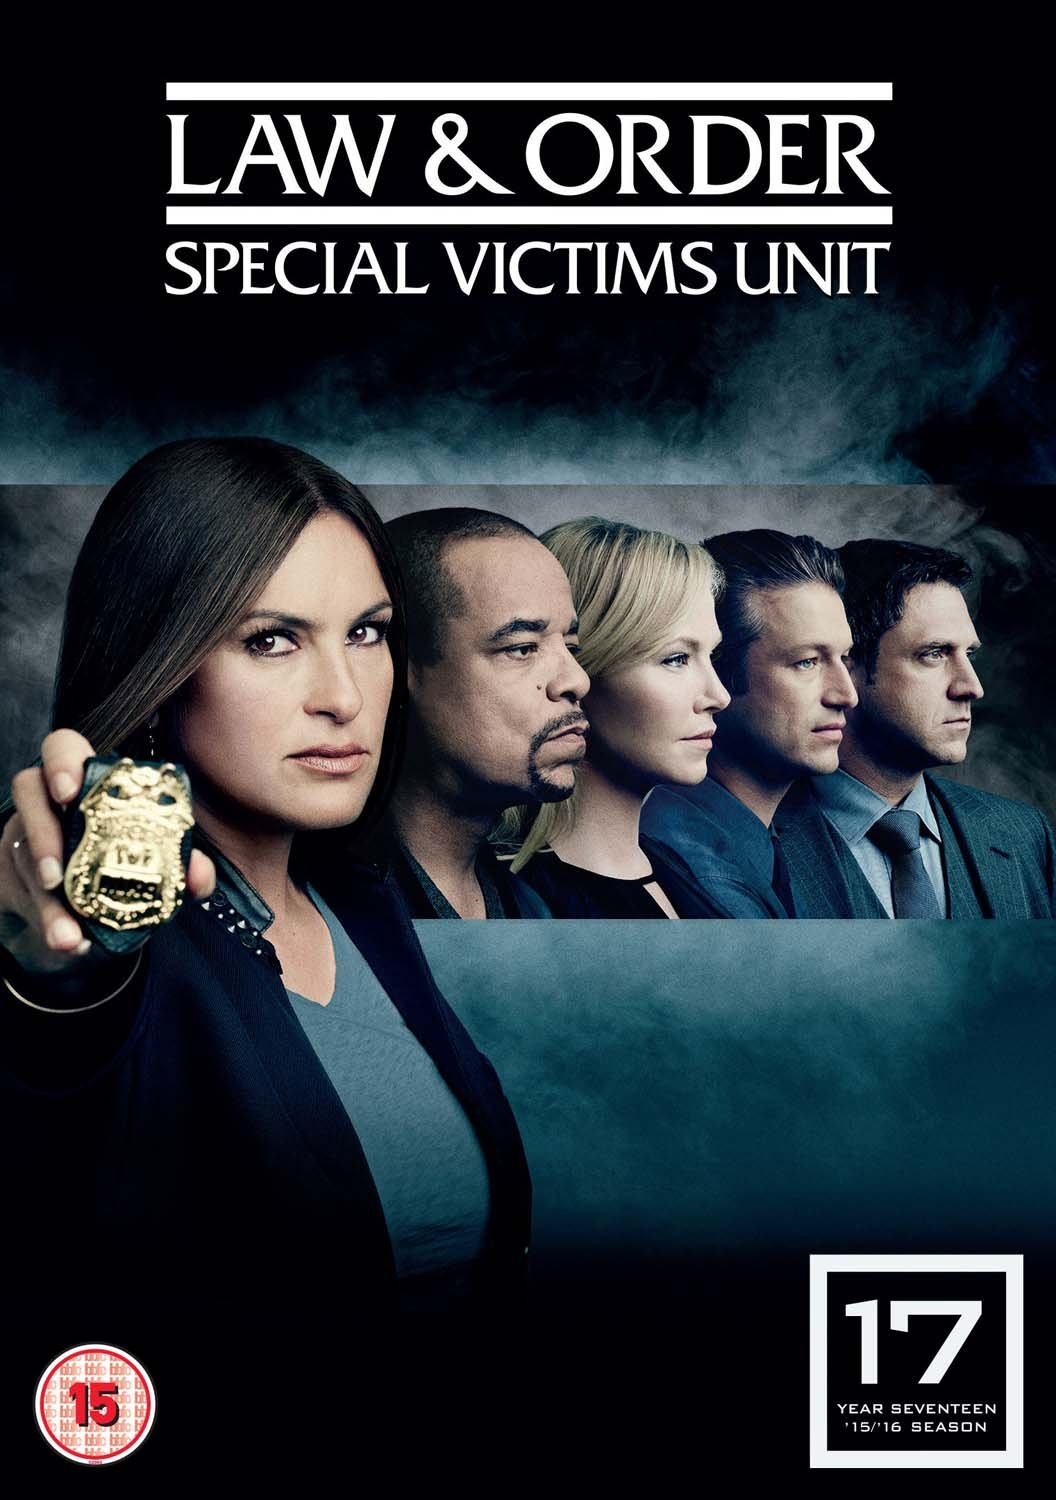 Law and Order - Special Victims Unit - Season 17 DVD UK Import ...